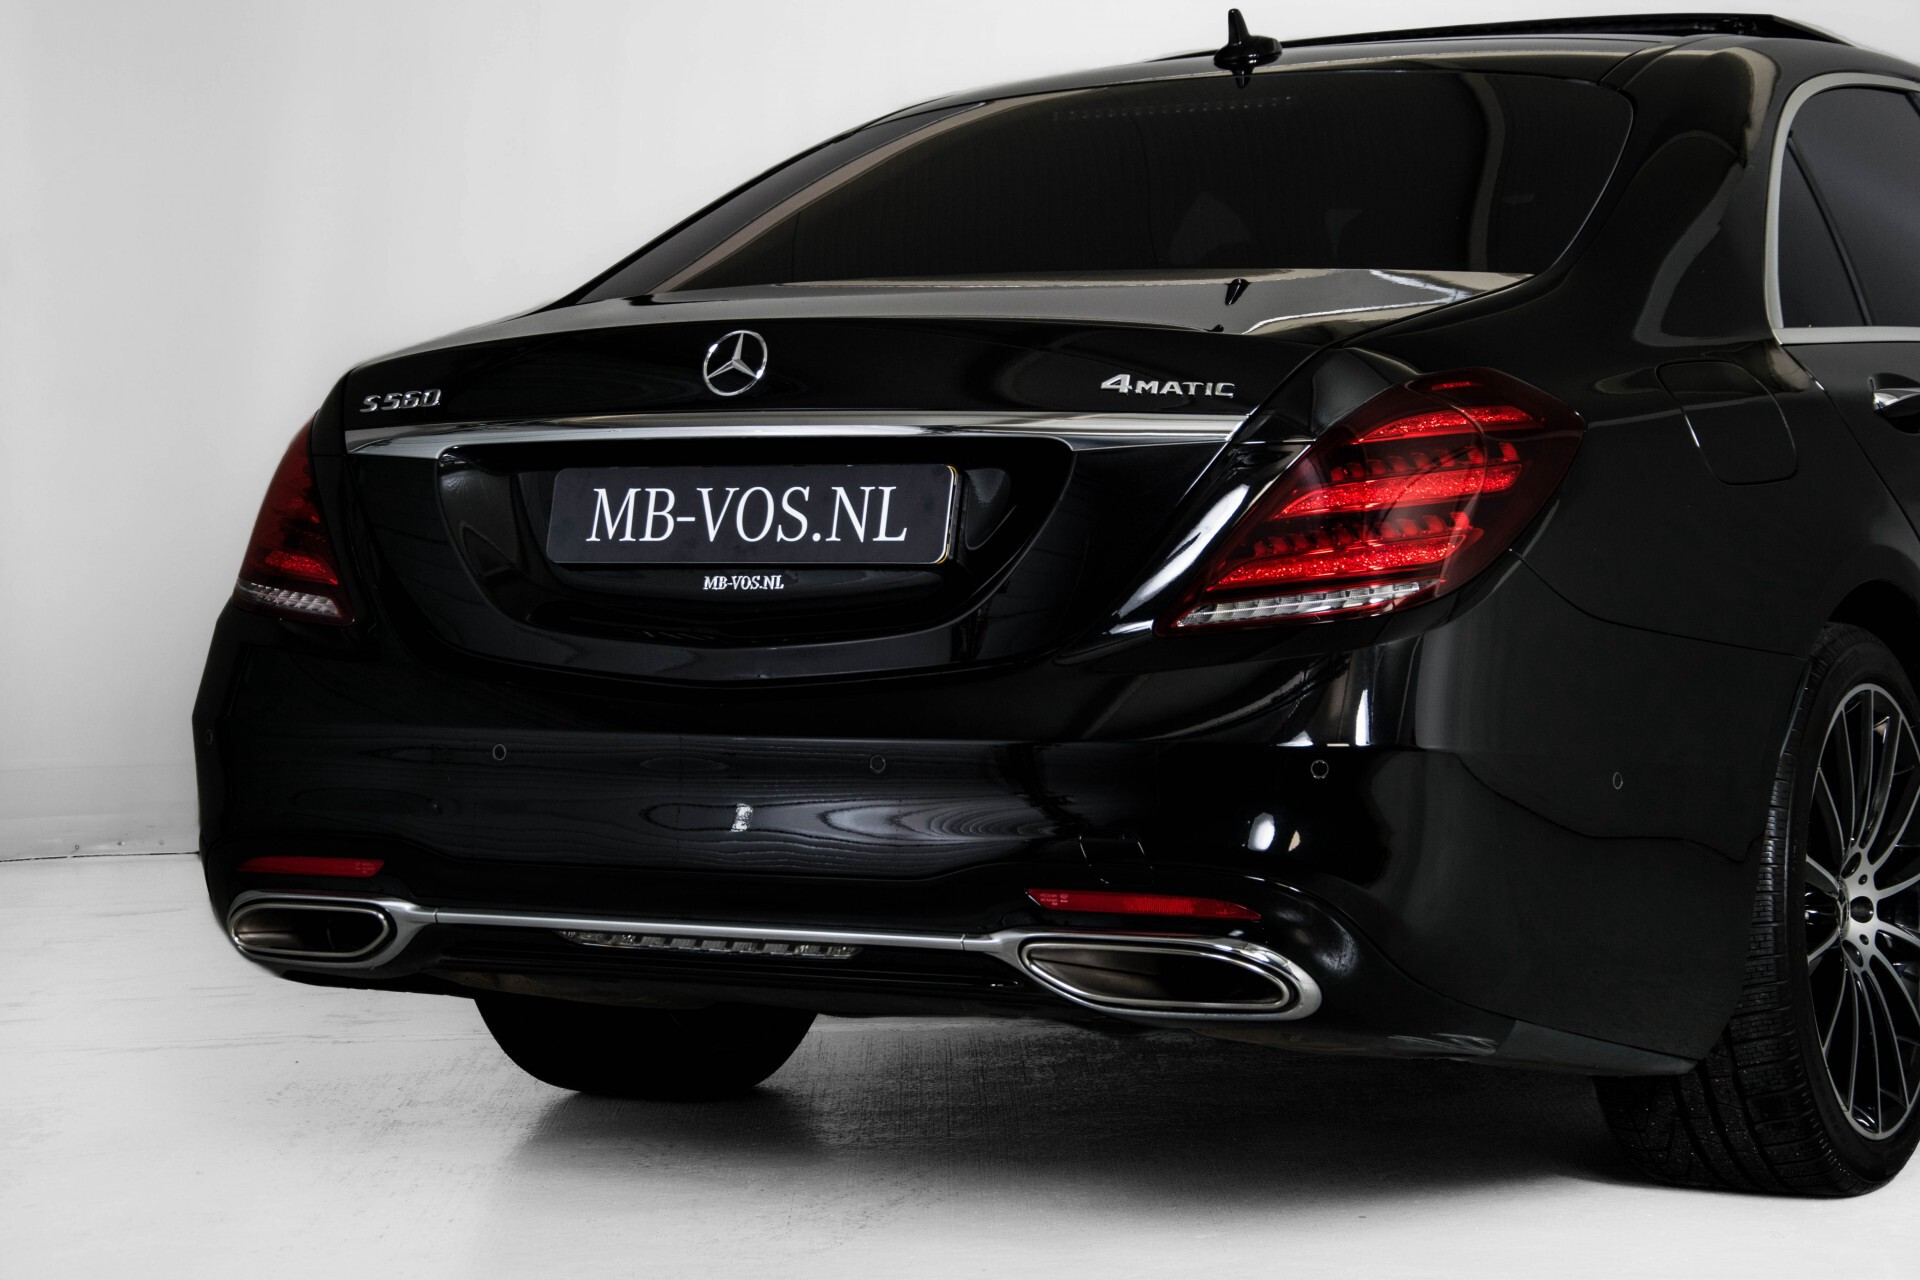 Mercedes-Benz S-Klasse 560 4-M Lang AMG Plus Exclusive Entertainment/Massage Aut9 Foto 72